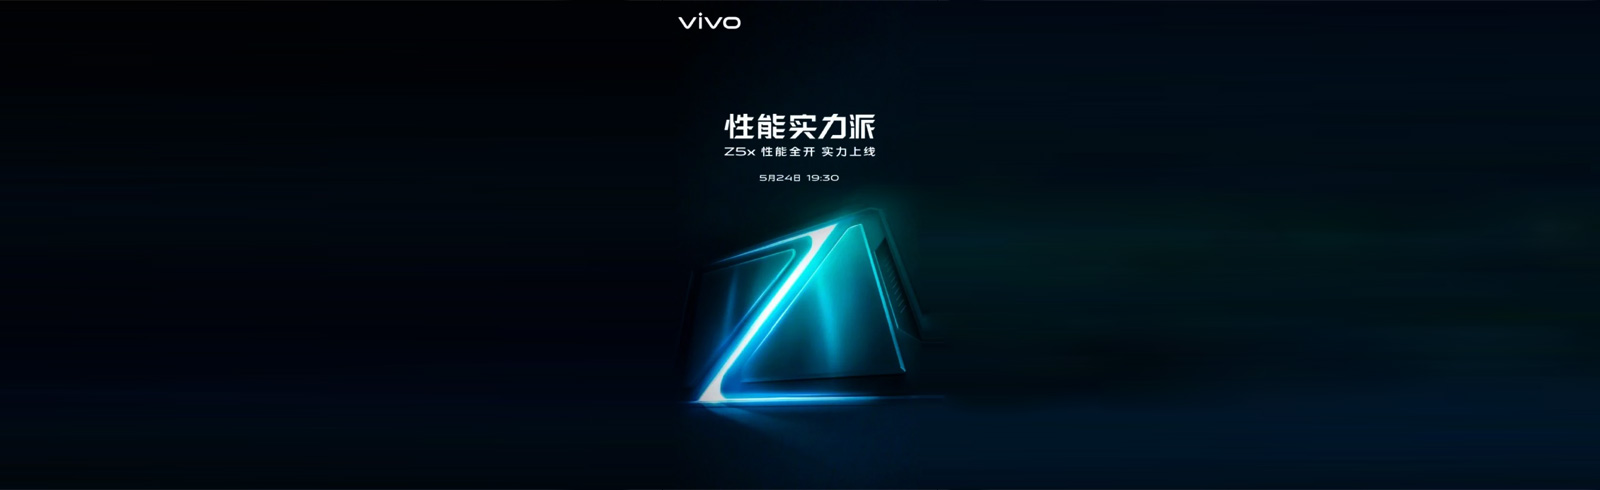 vivo Z5x will be announced on May 24th, will feature a punch-hole display